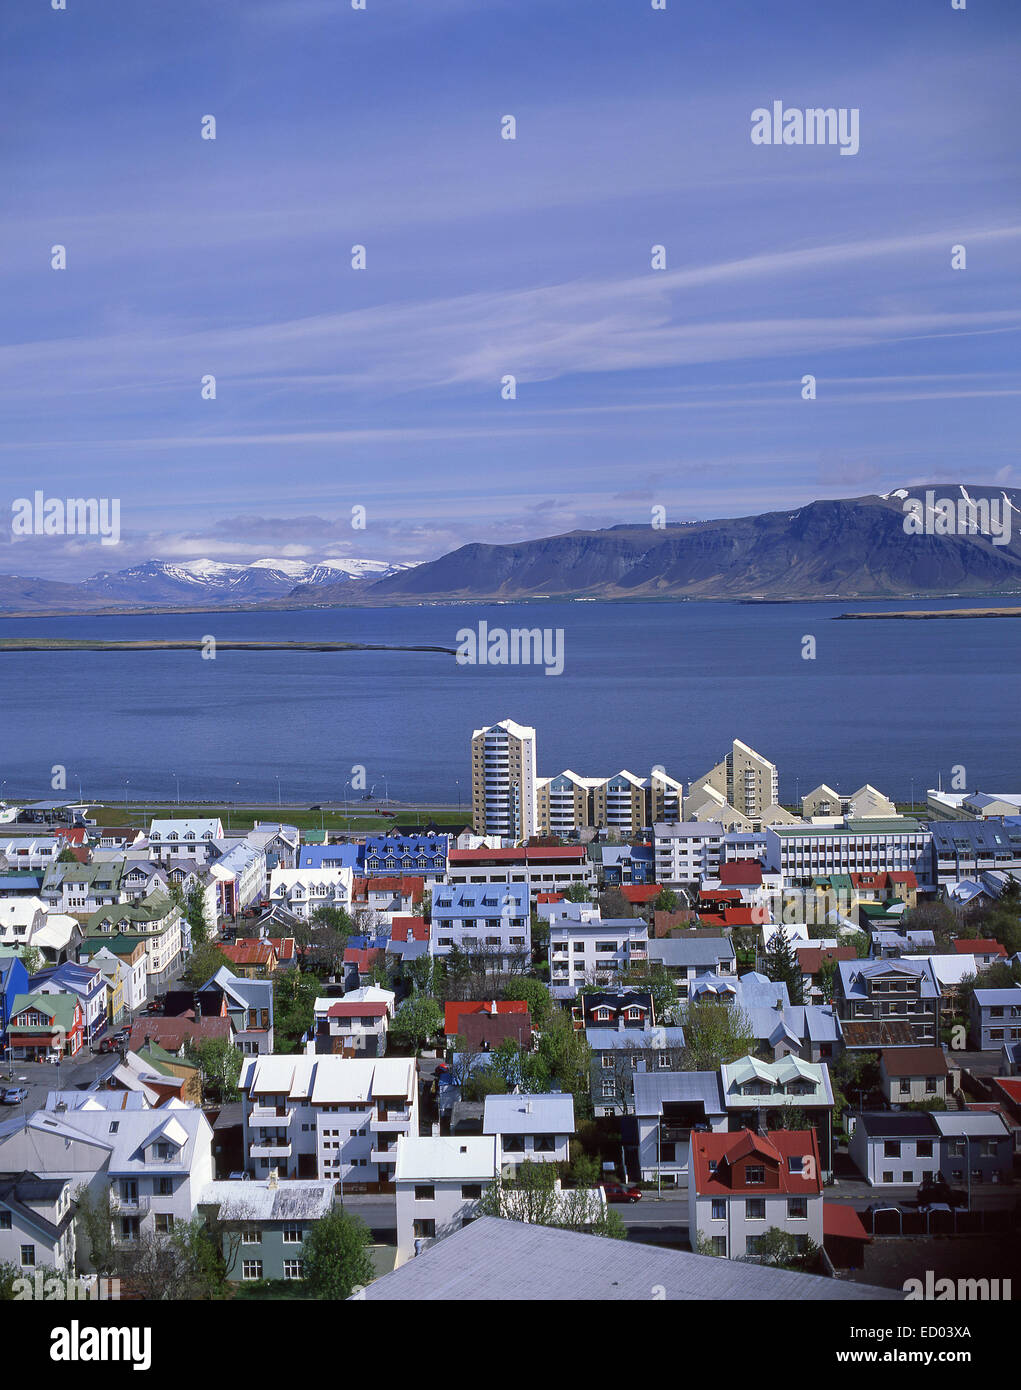 Ville et vue sur le port, Reykjavík, la capitale nationale, République d'Islande Photo Stock